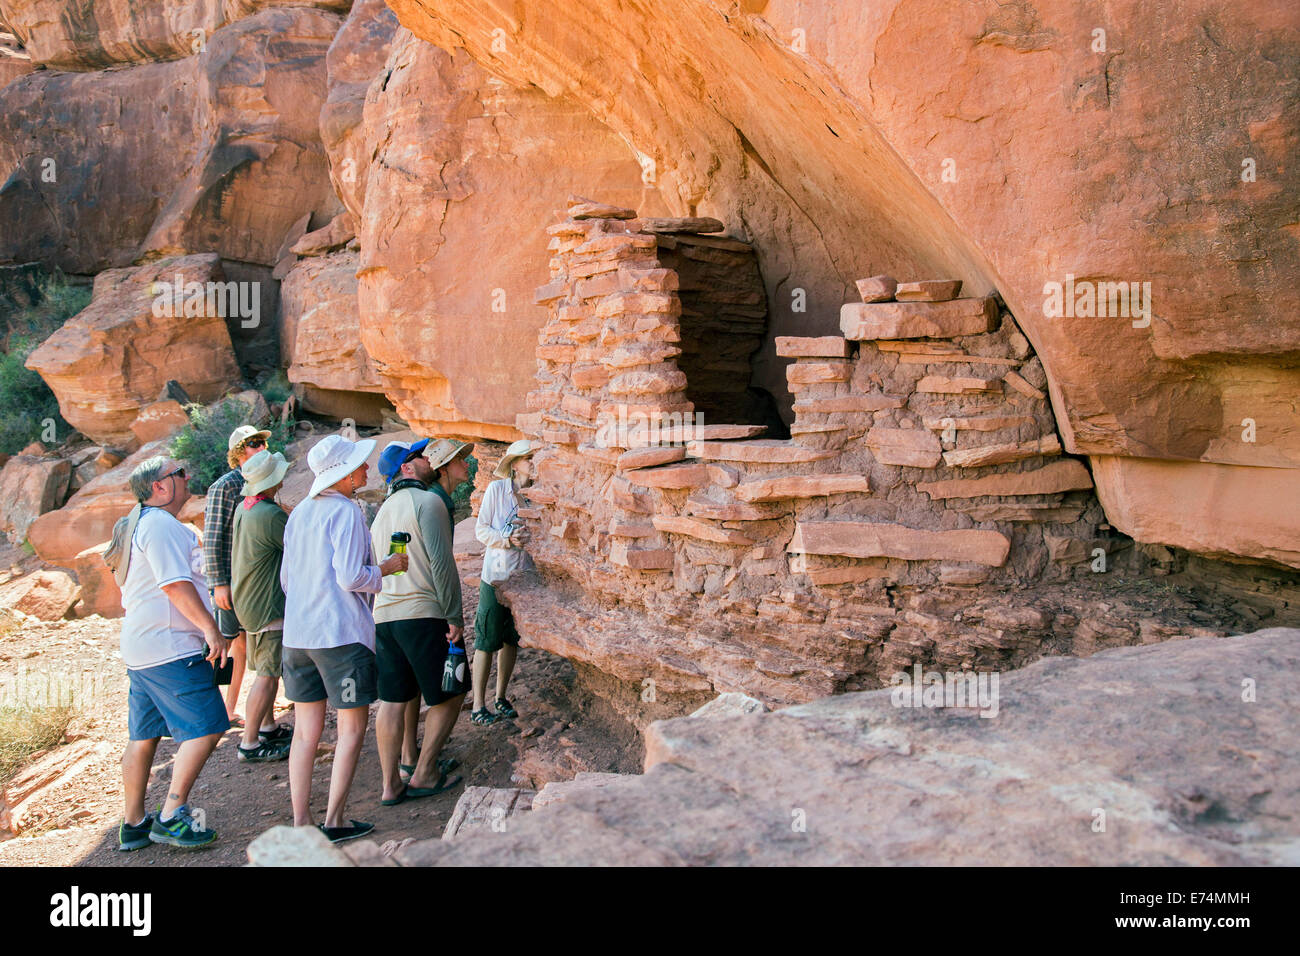 Canyonlands National Park, Utah - A river rafting group examines an ancient Anasazi granary in Canyonlands National - Stock Image